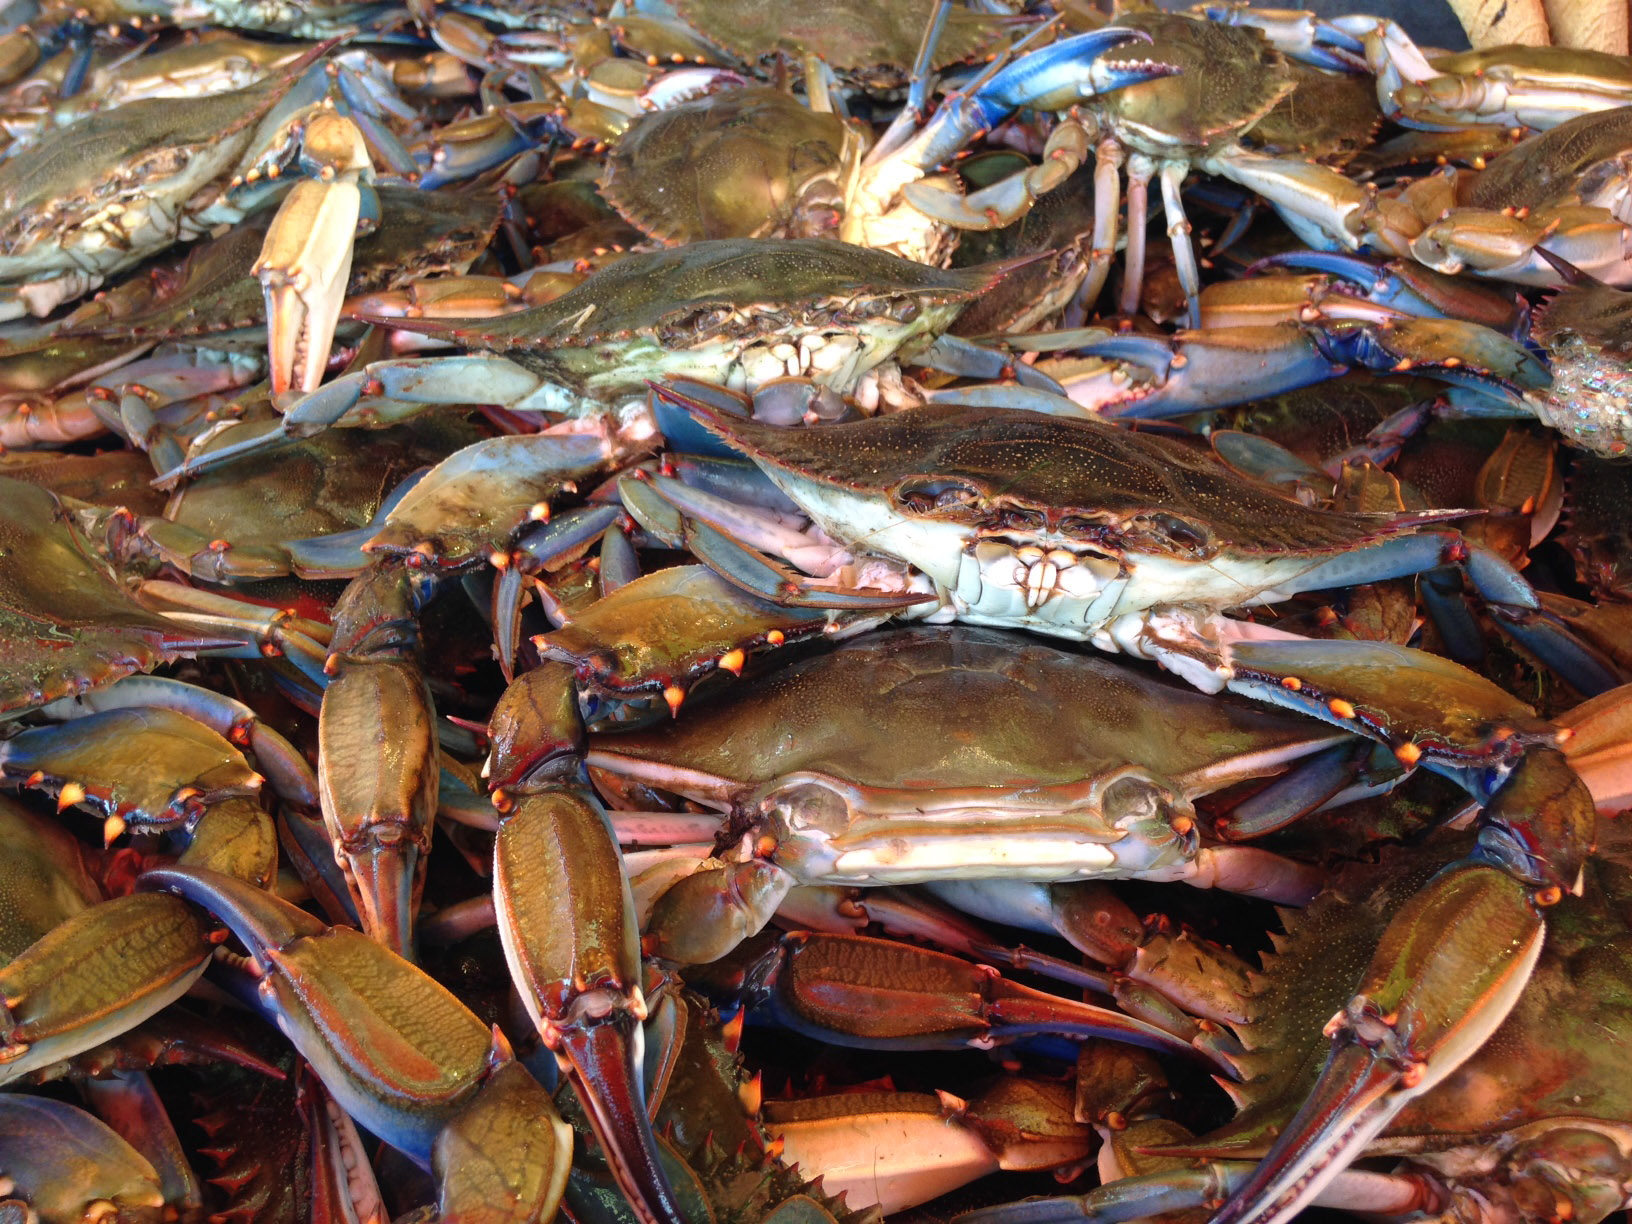 Blue crab population on the rise in Chesapeake Bay